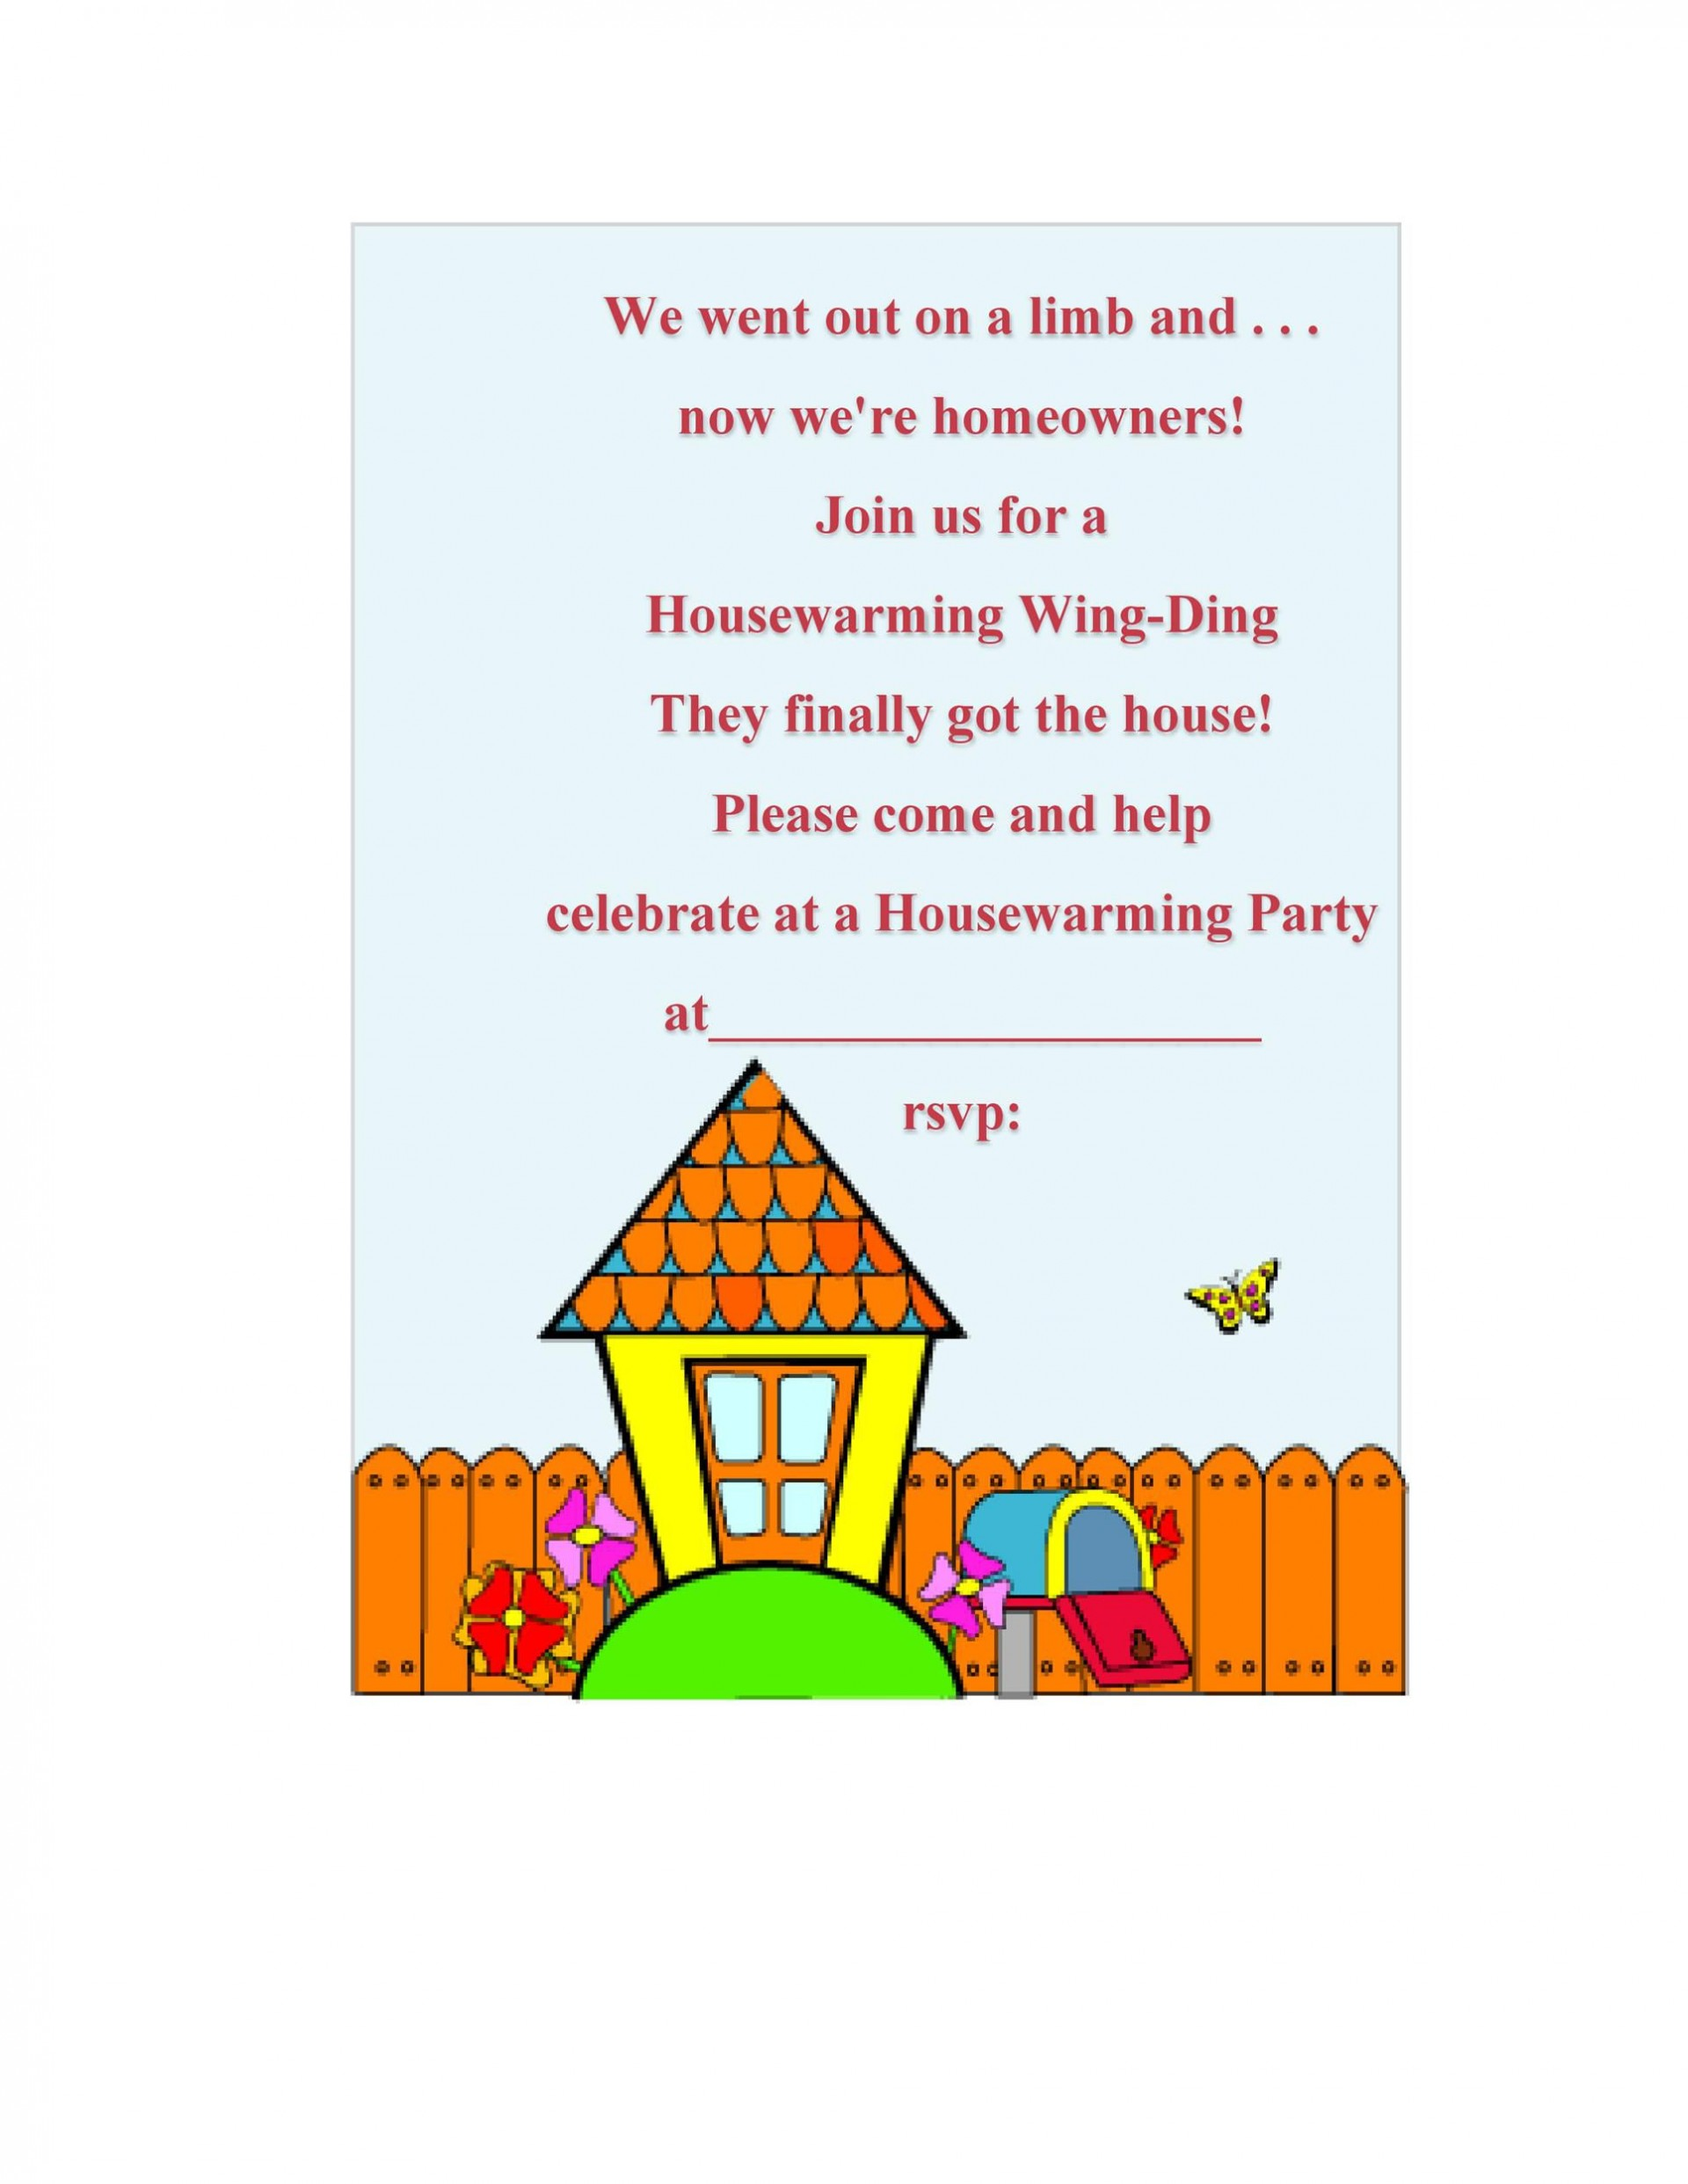 008 Top Housewarming Party Invitation Template Image  Templates Free Download Card1920